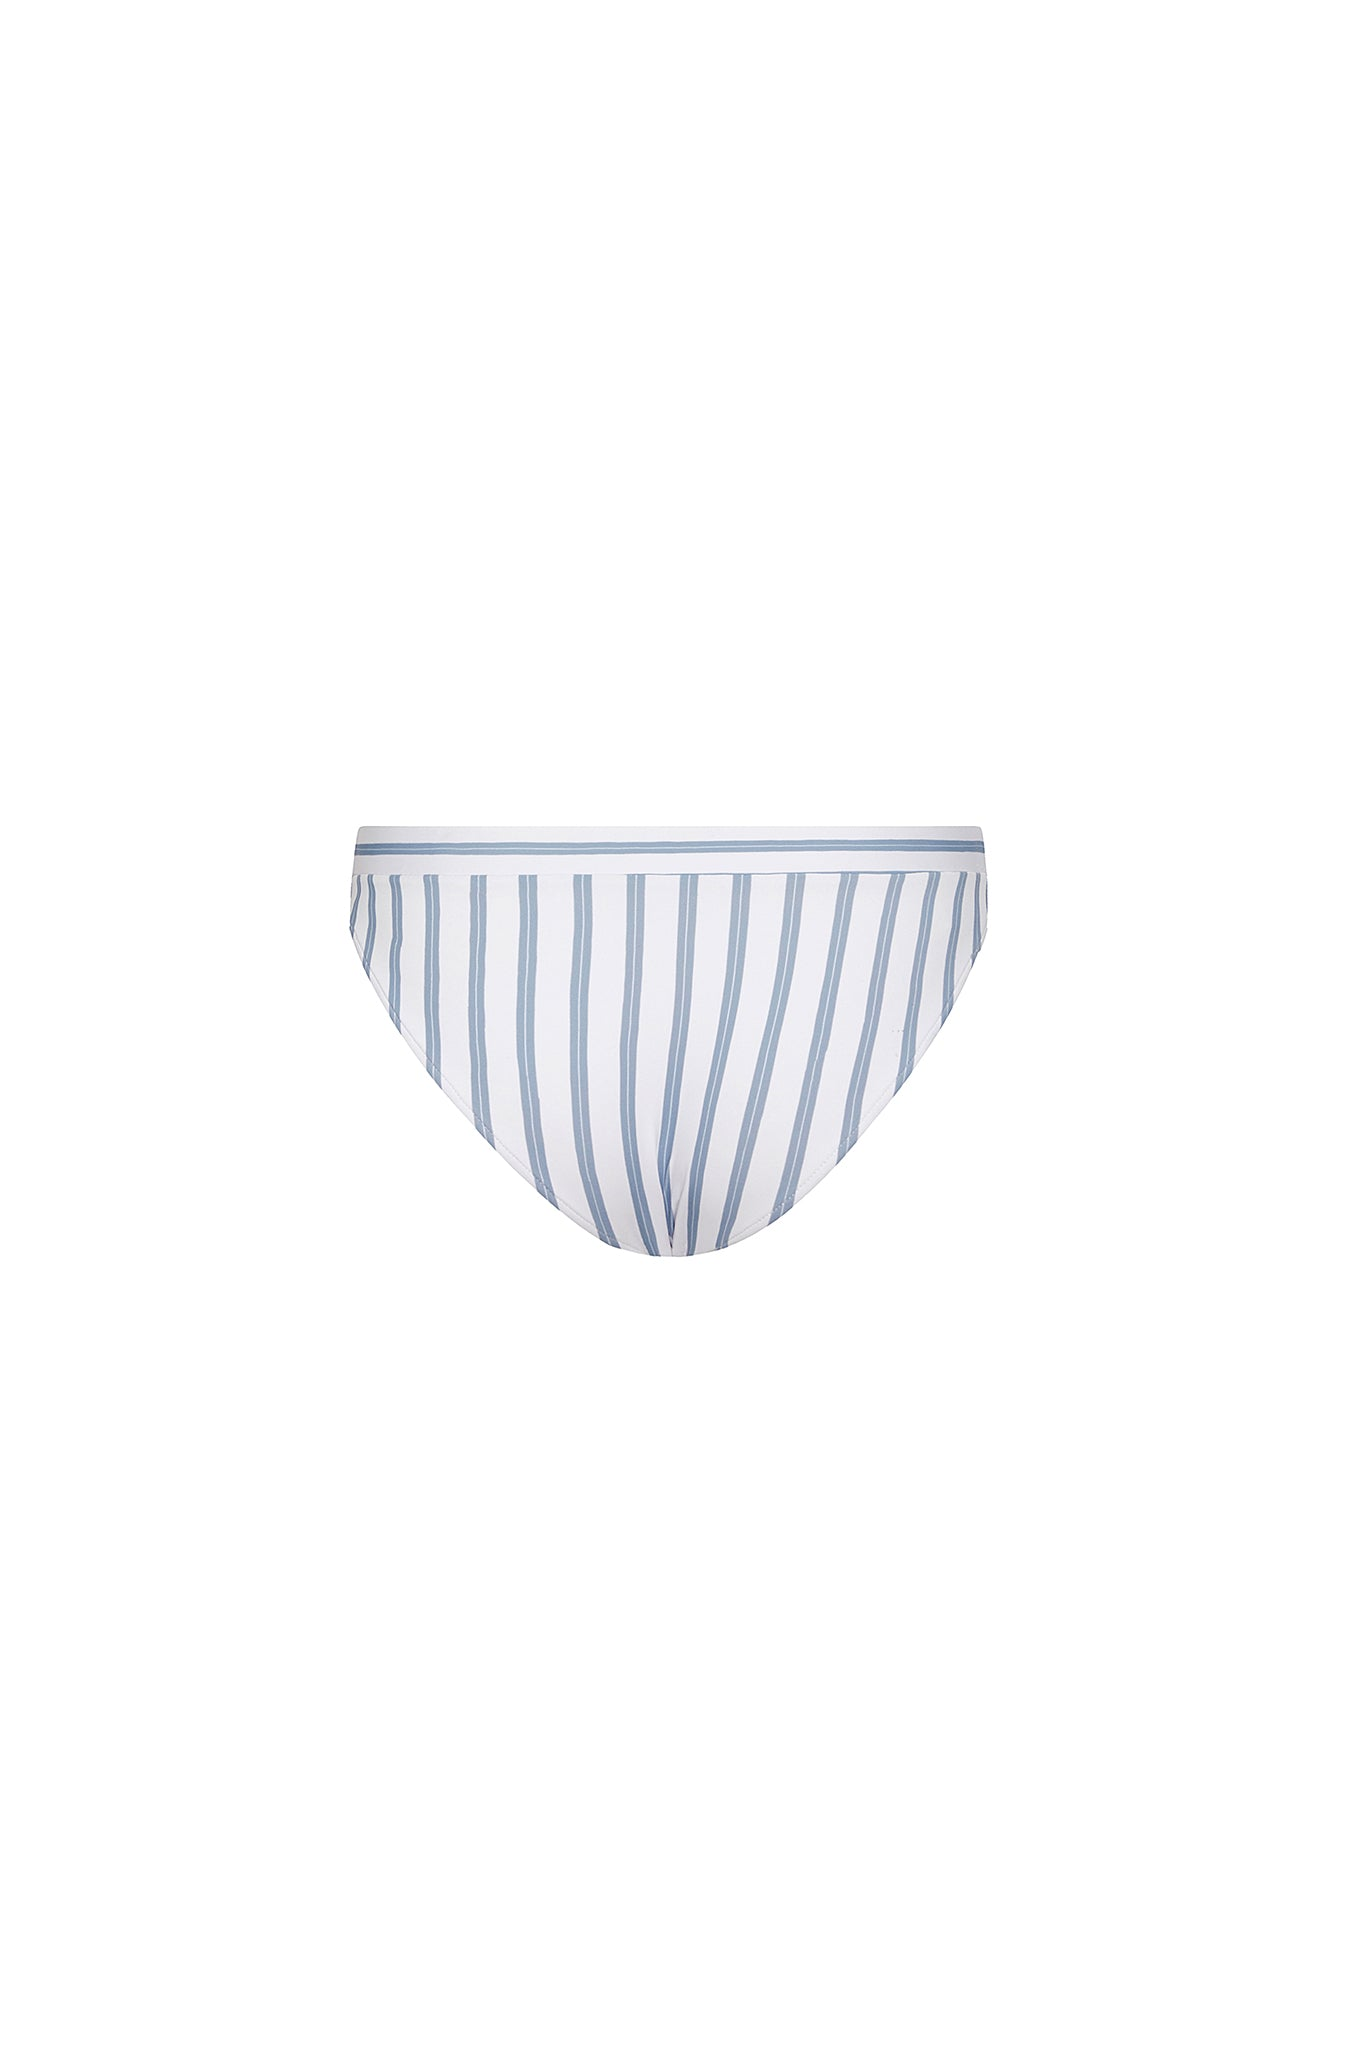 Rita Lowrise Bottom in Hampton Blue and White Stripe